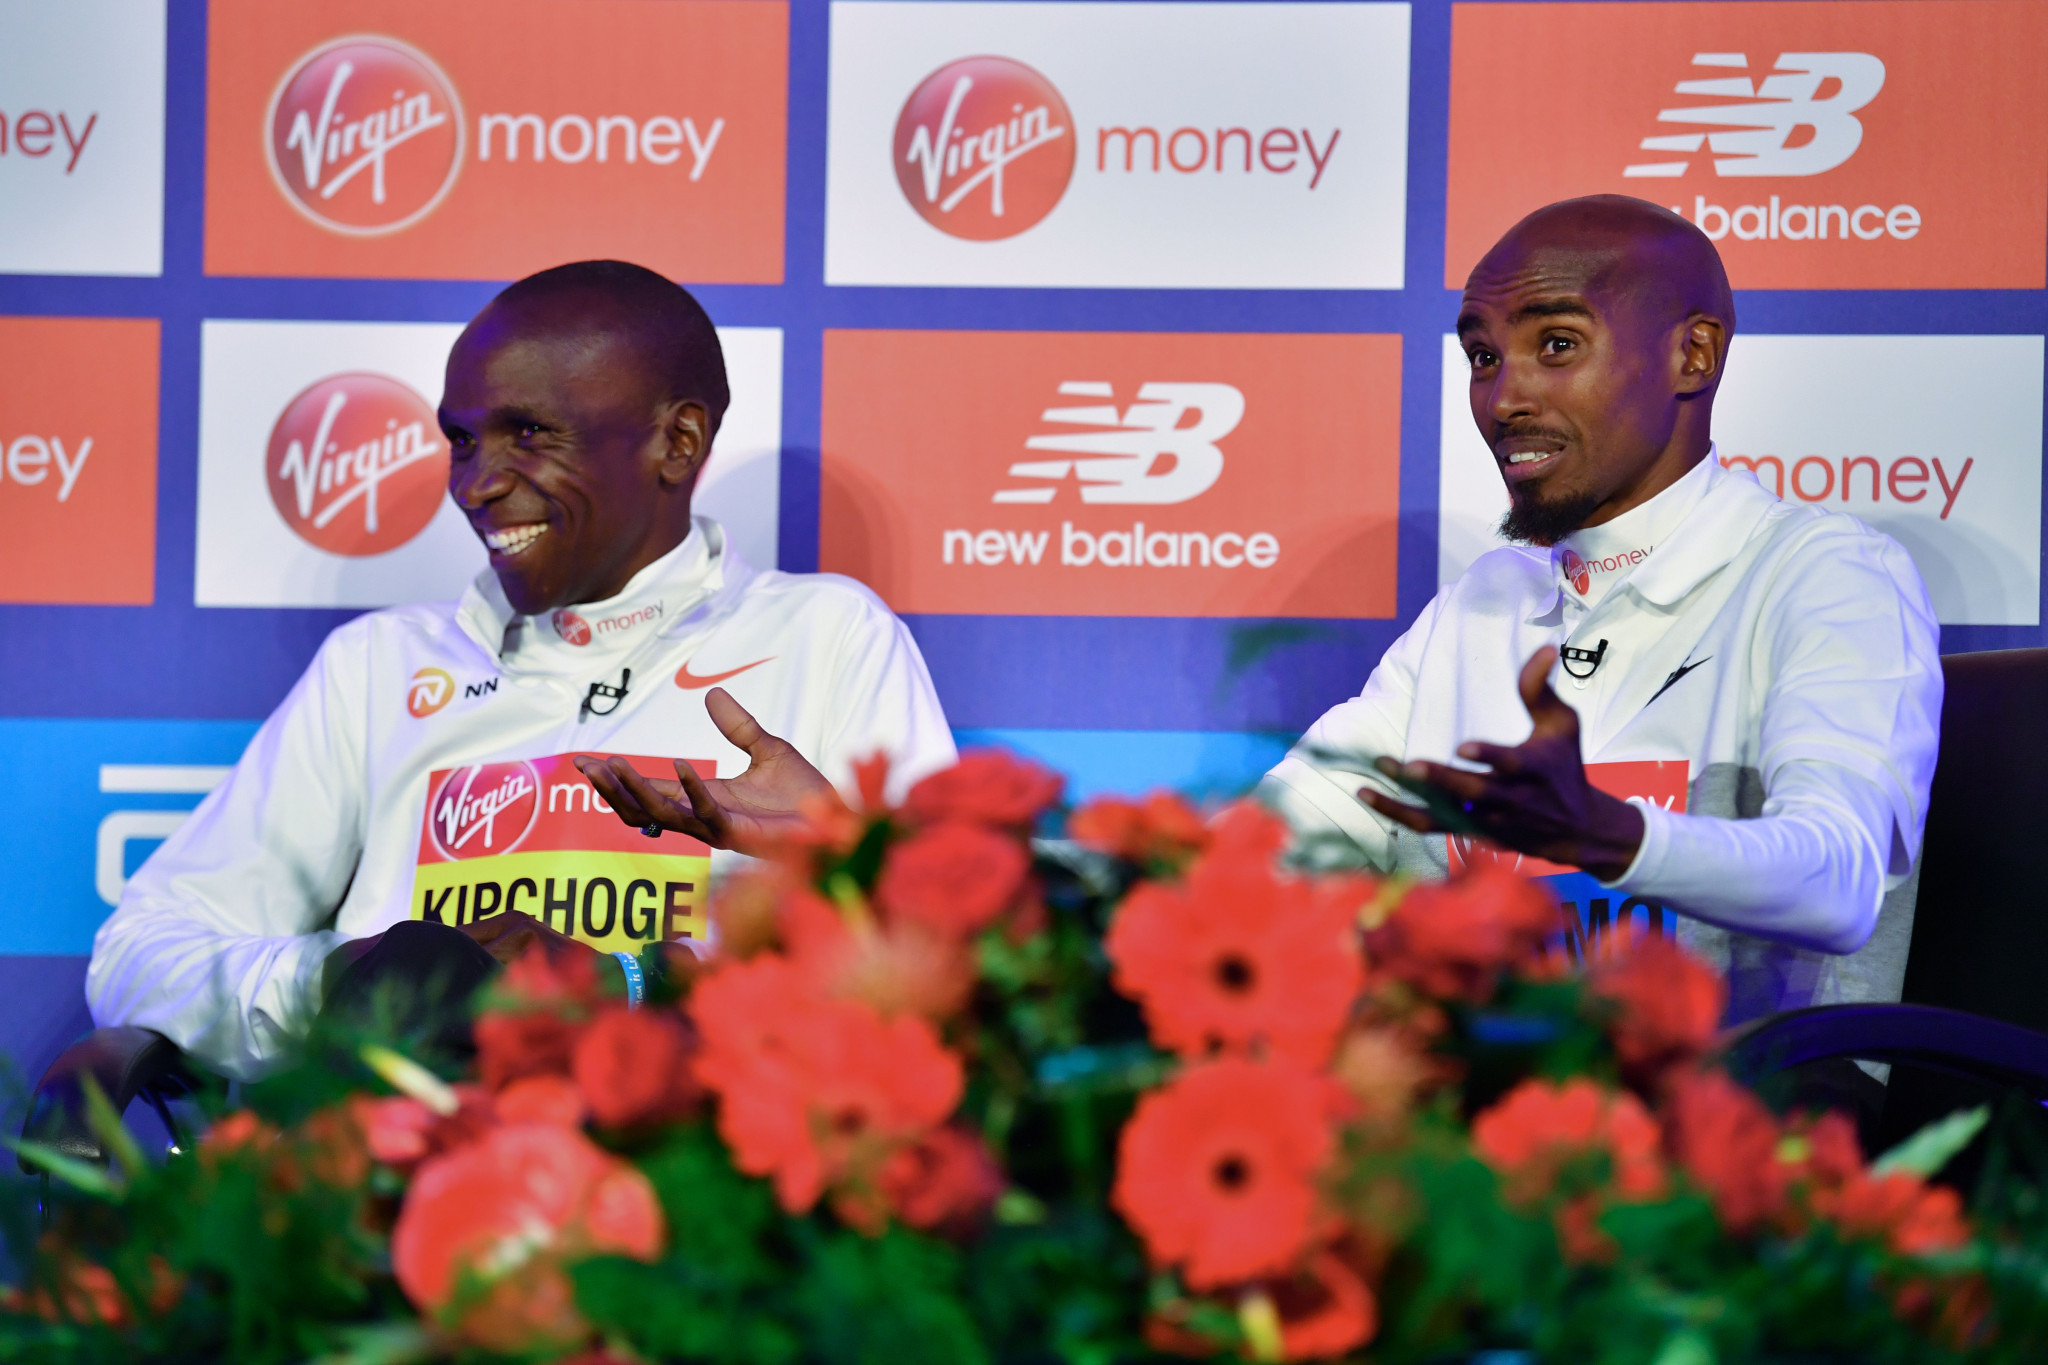 Mo Farah admits he faces a tough challenge against the world record holder ©Getty Images